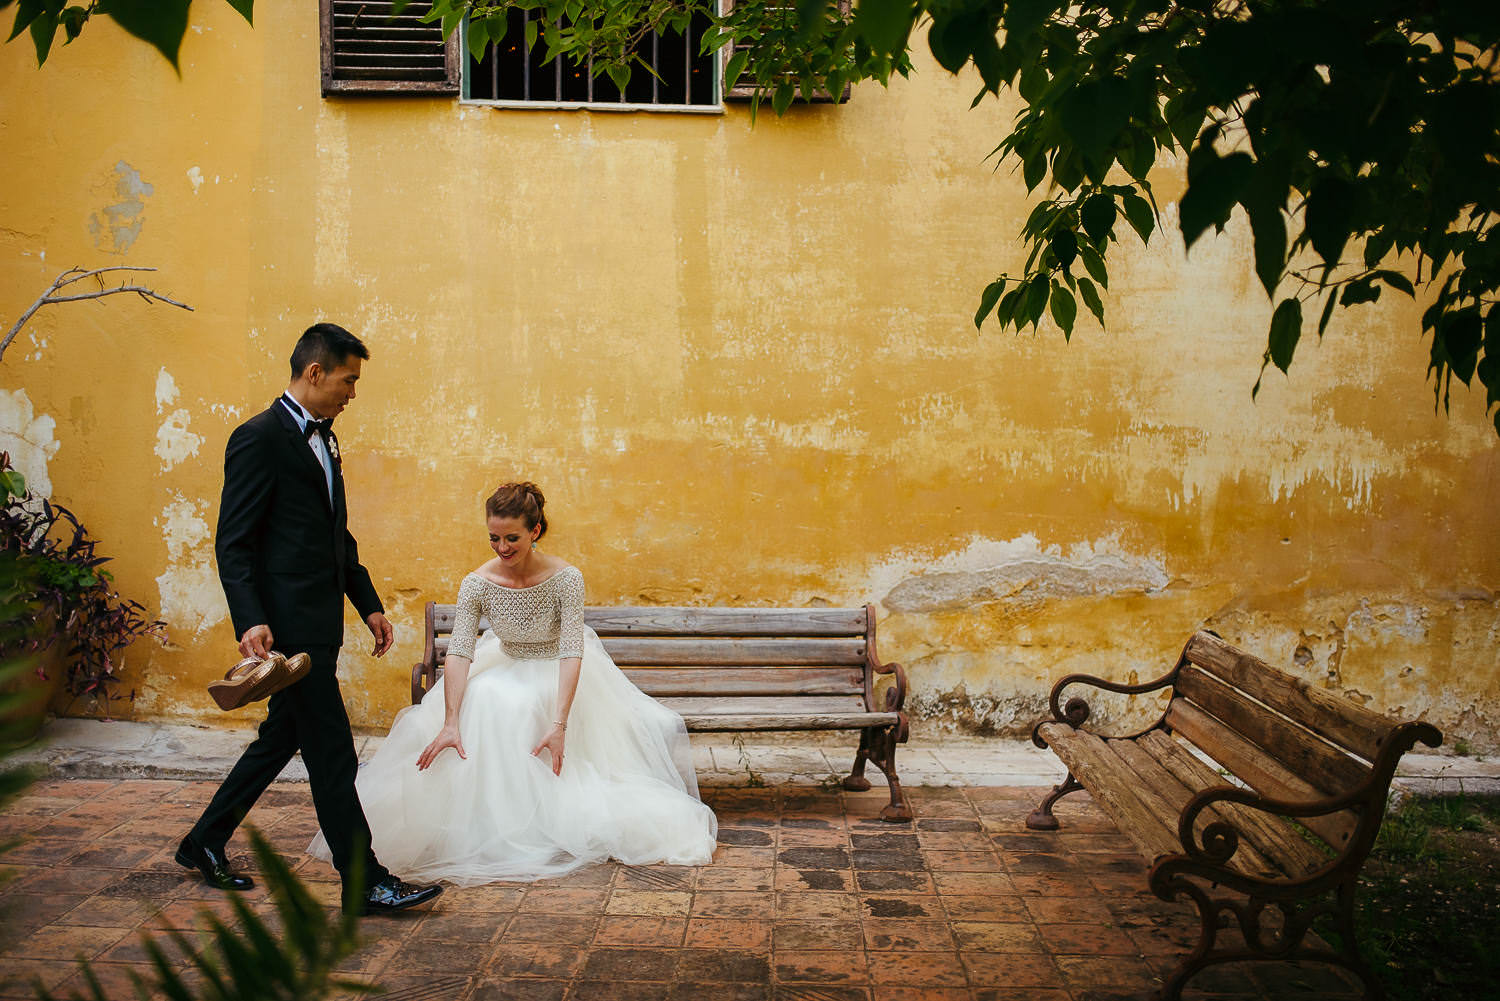 Barcelona documentary wedding photographer